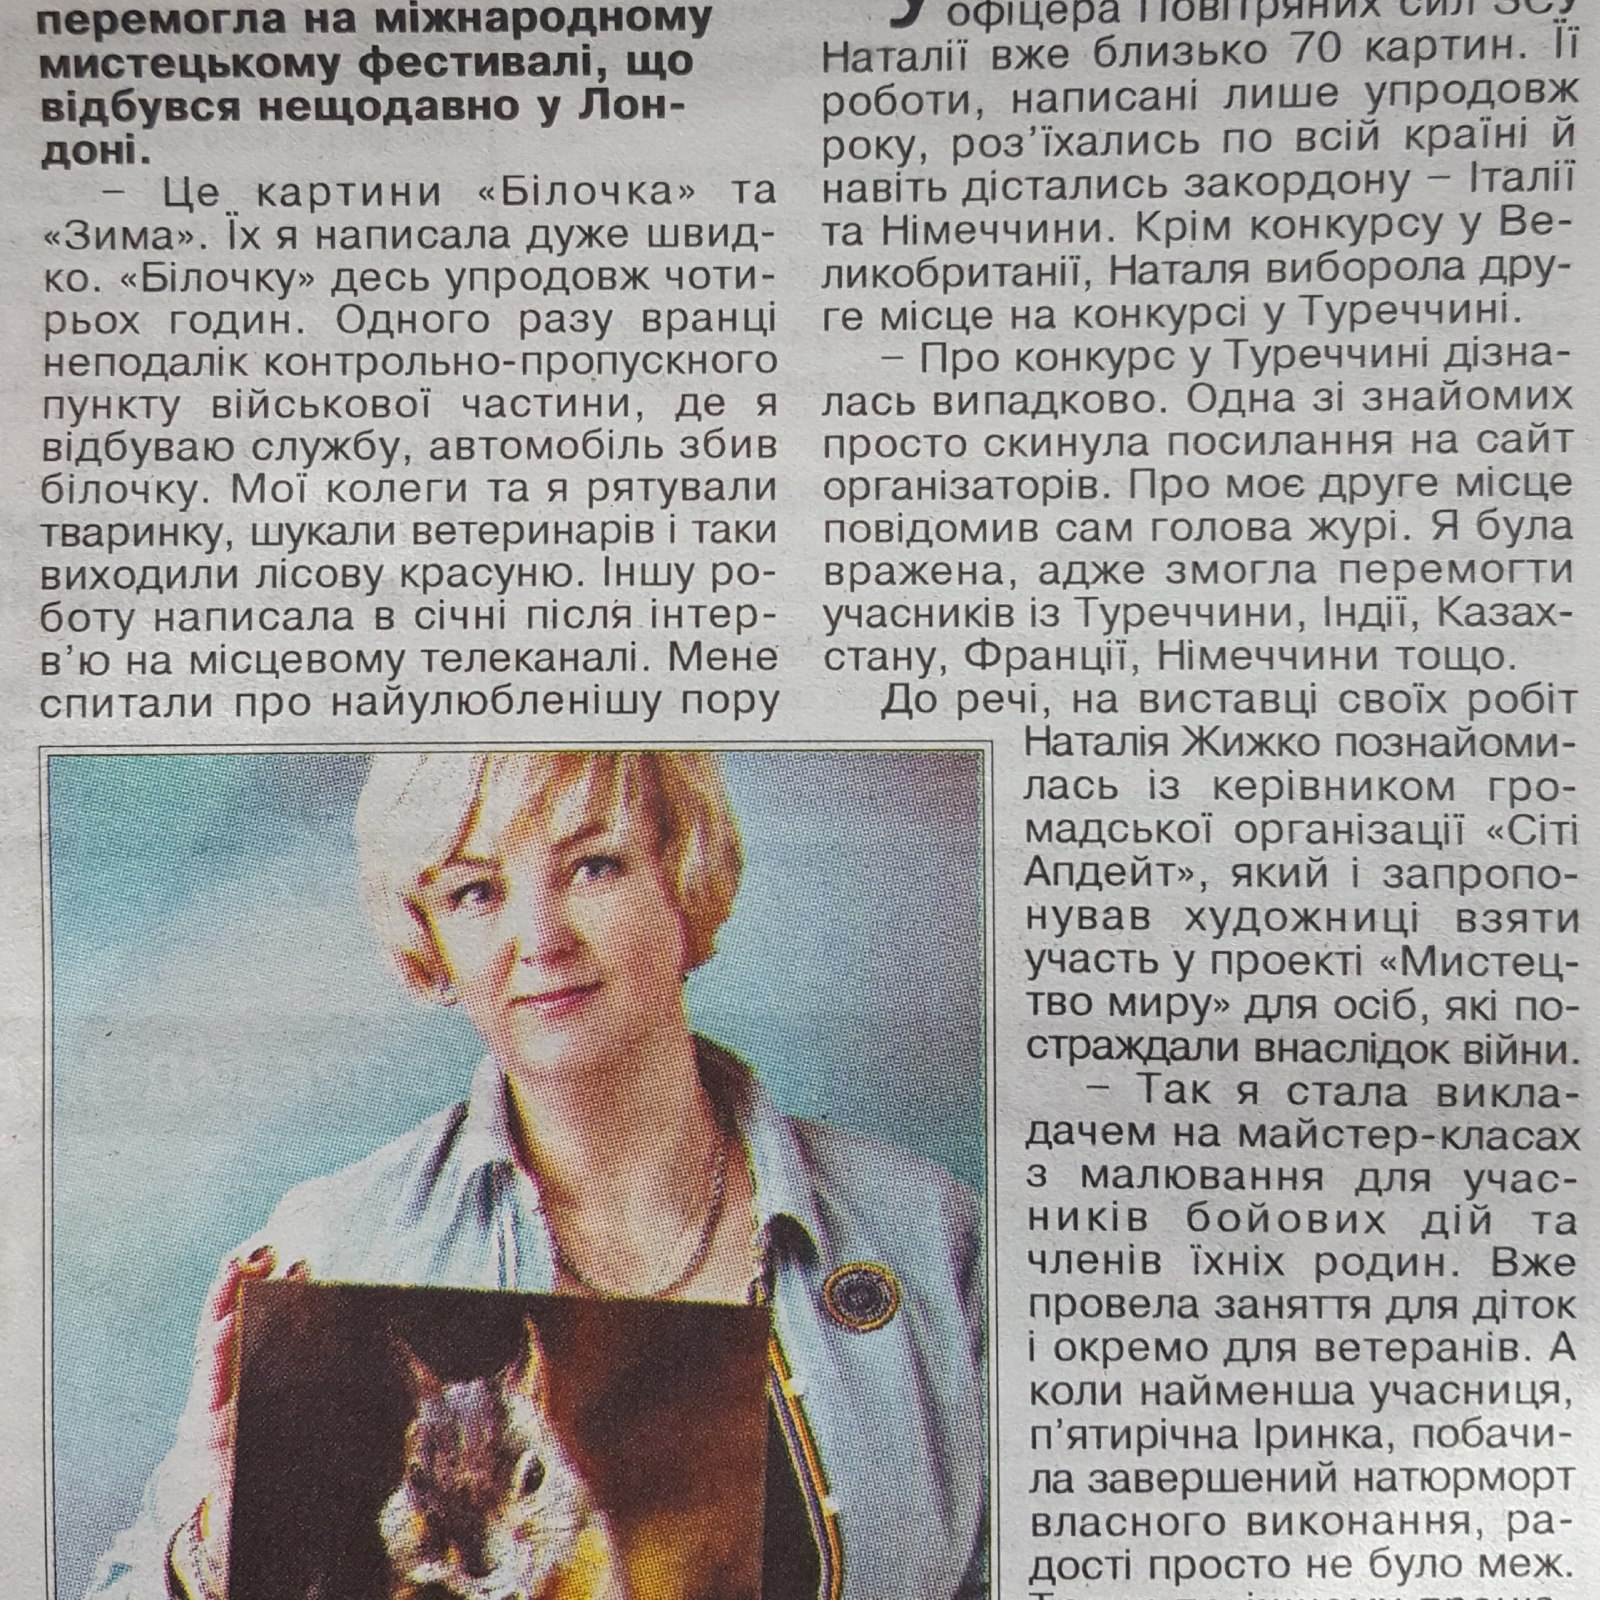 ] newspaper akticle about  me